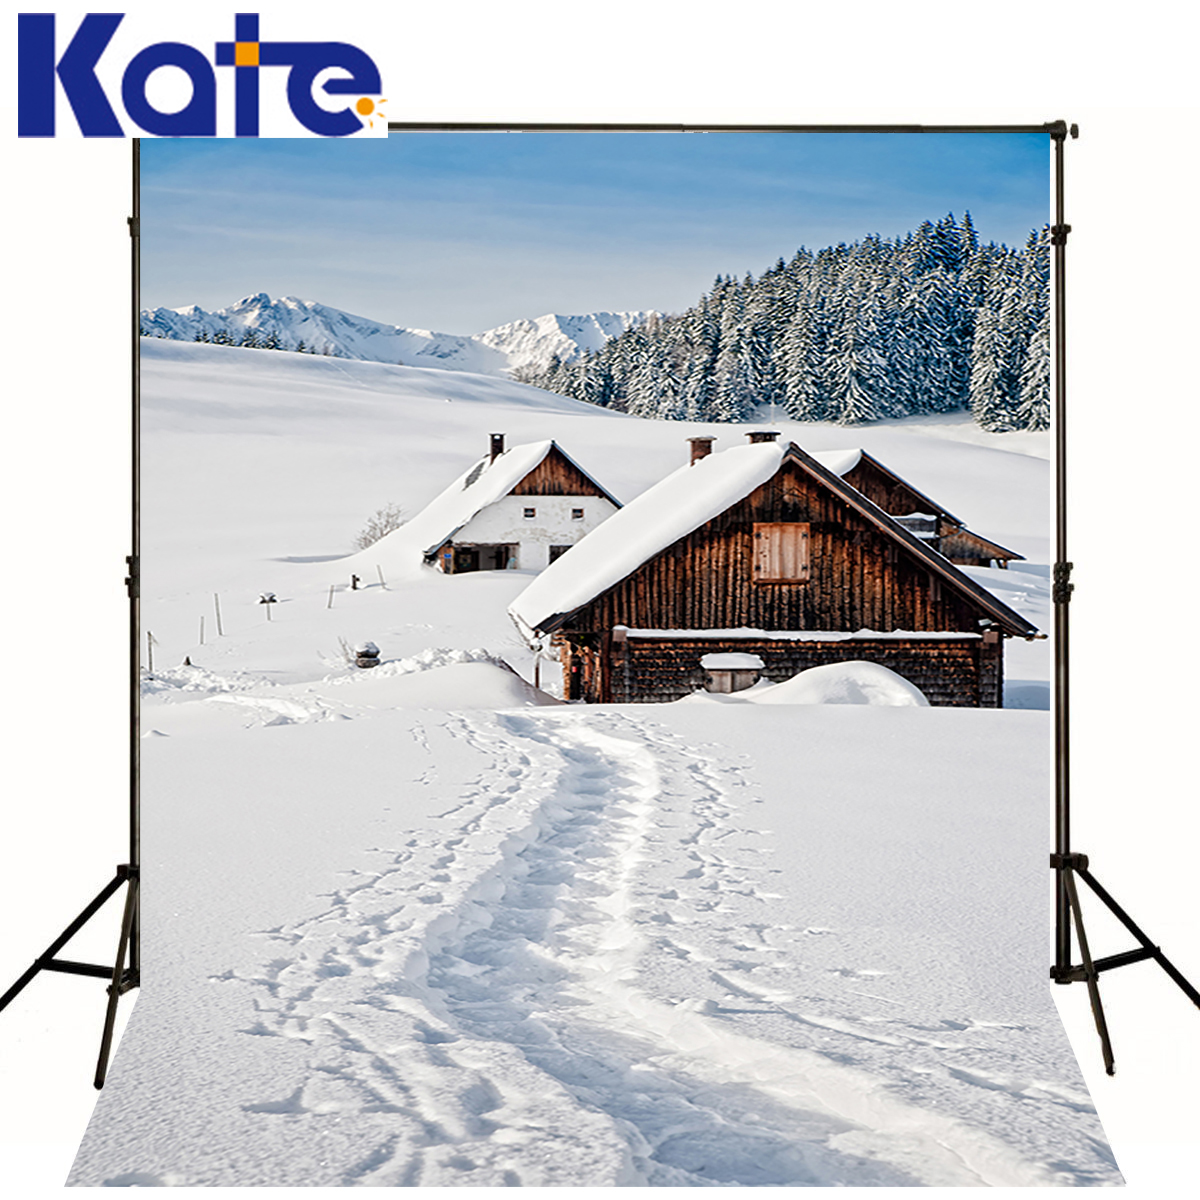 KATE Photography Backgrounds Winter Wood House Backdrops Forest Scenery Photo Shoot White Snow World Backdrops For Photo Studio